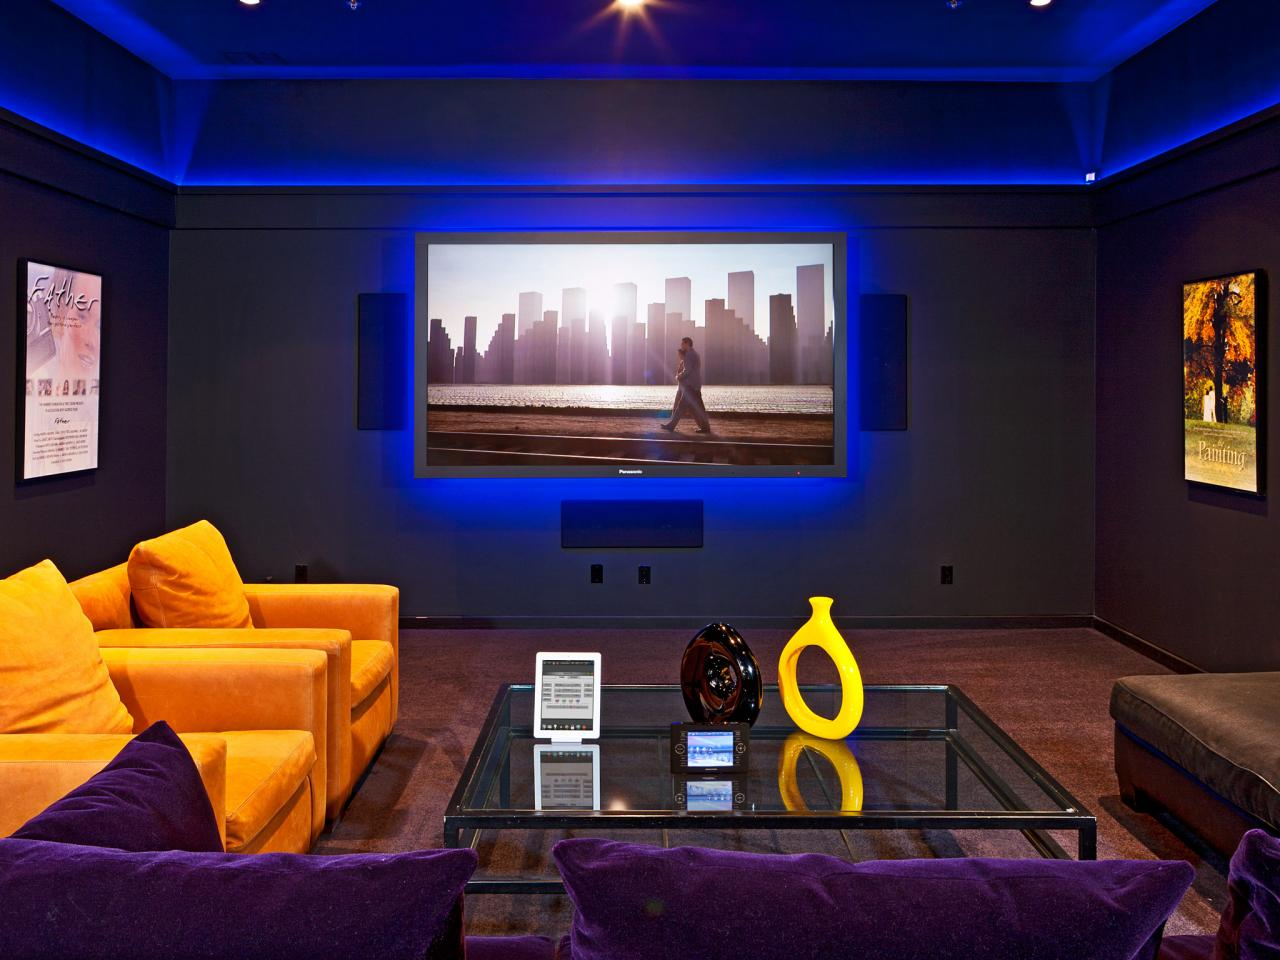 Home theater design ideas pictures tips options hgtv Home theater design ideas on a budget